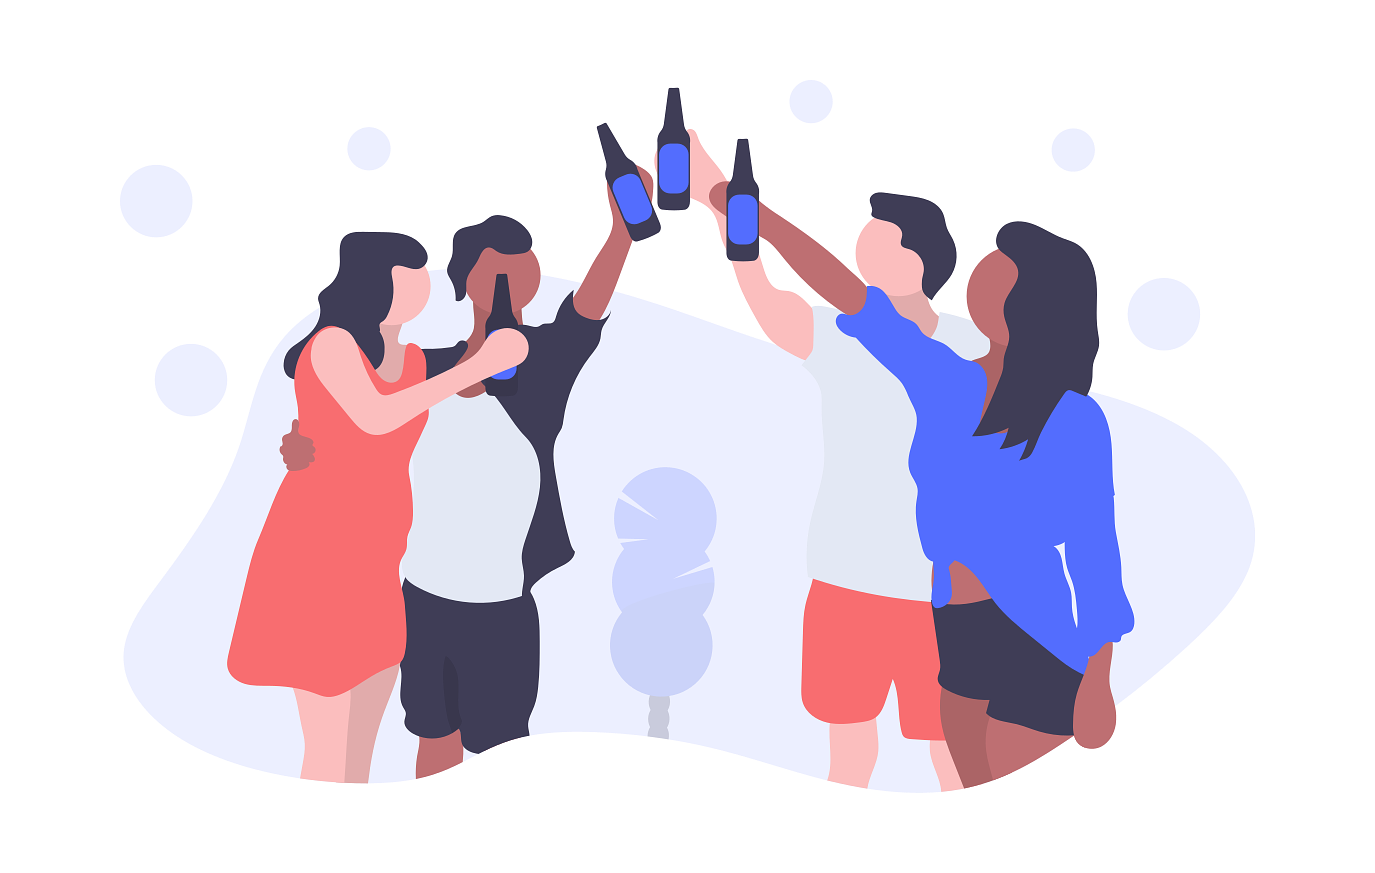 Friends celebrating with drinks